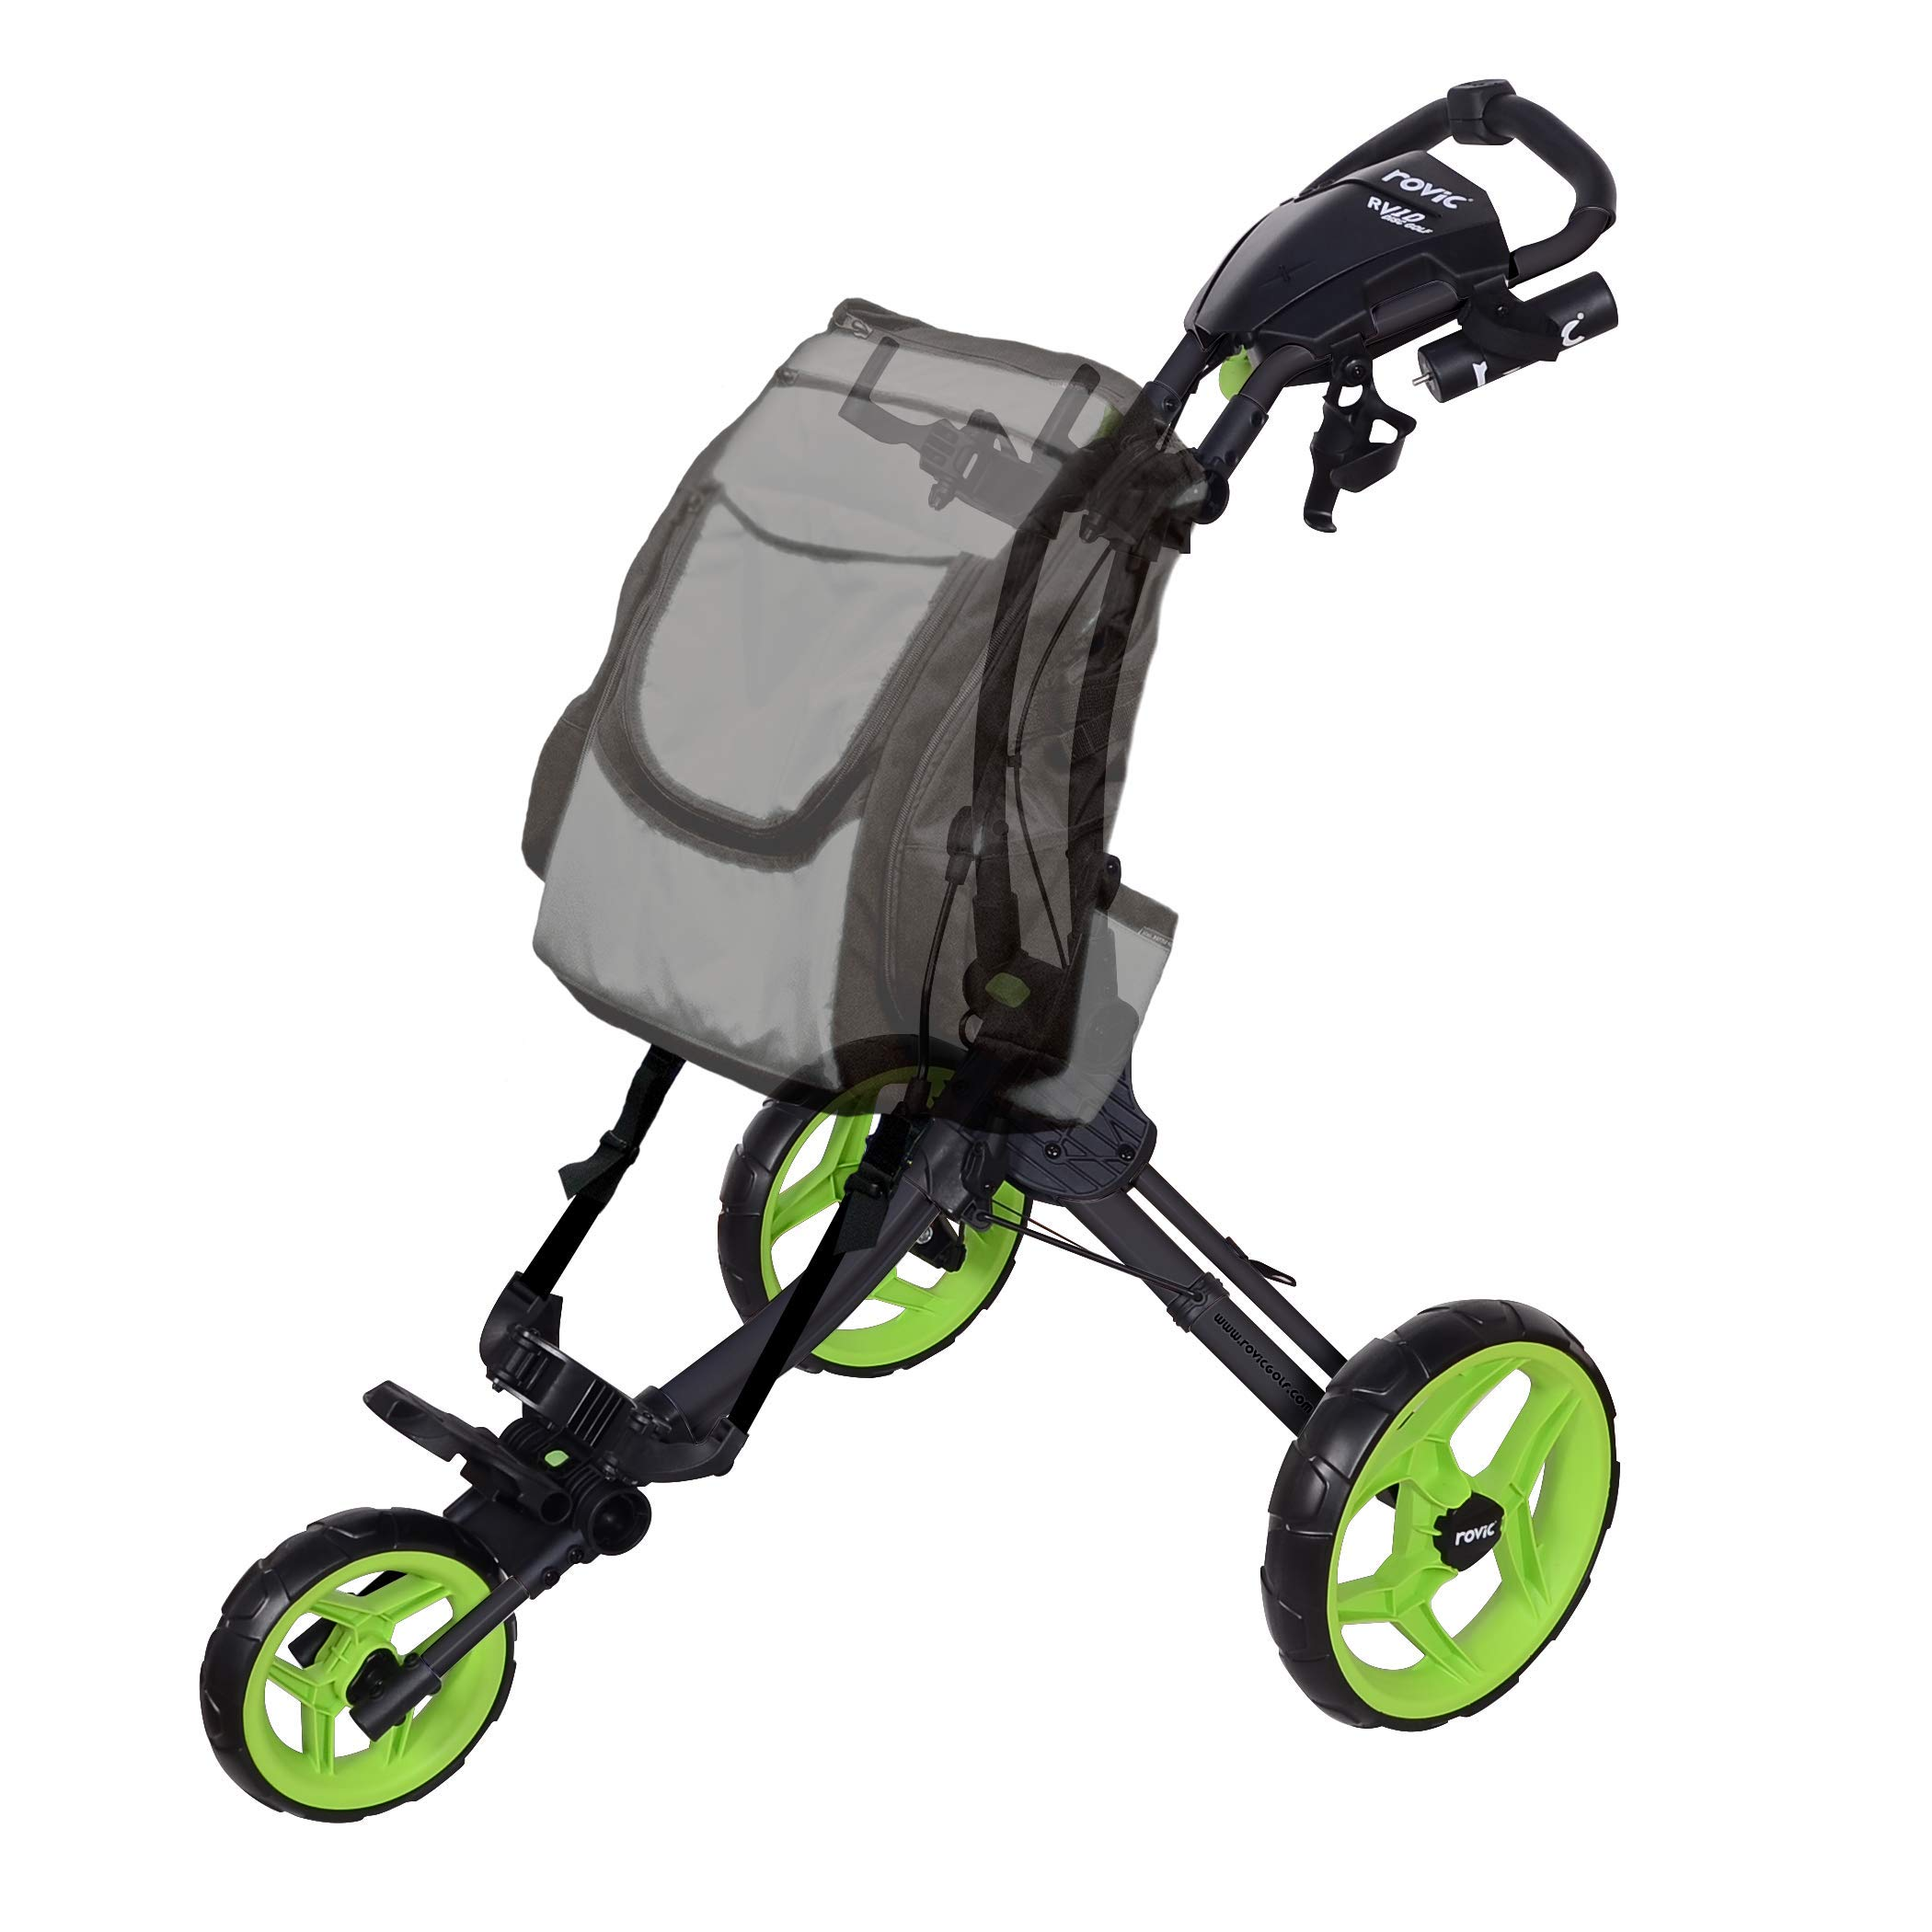 Rovic RV1D 3-Wheel Disc Golf Push Cart   Fits All Disc Golf Backpacks (Charcoal/Lime) by Rovic